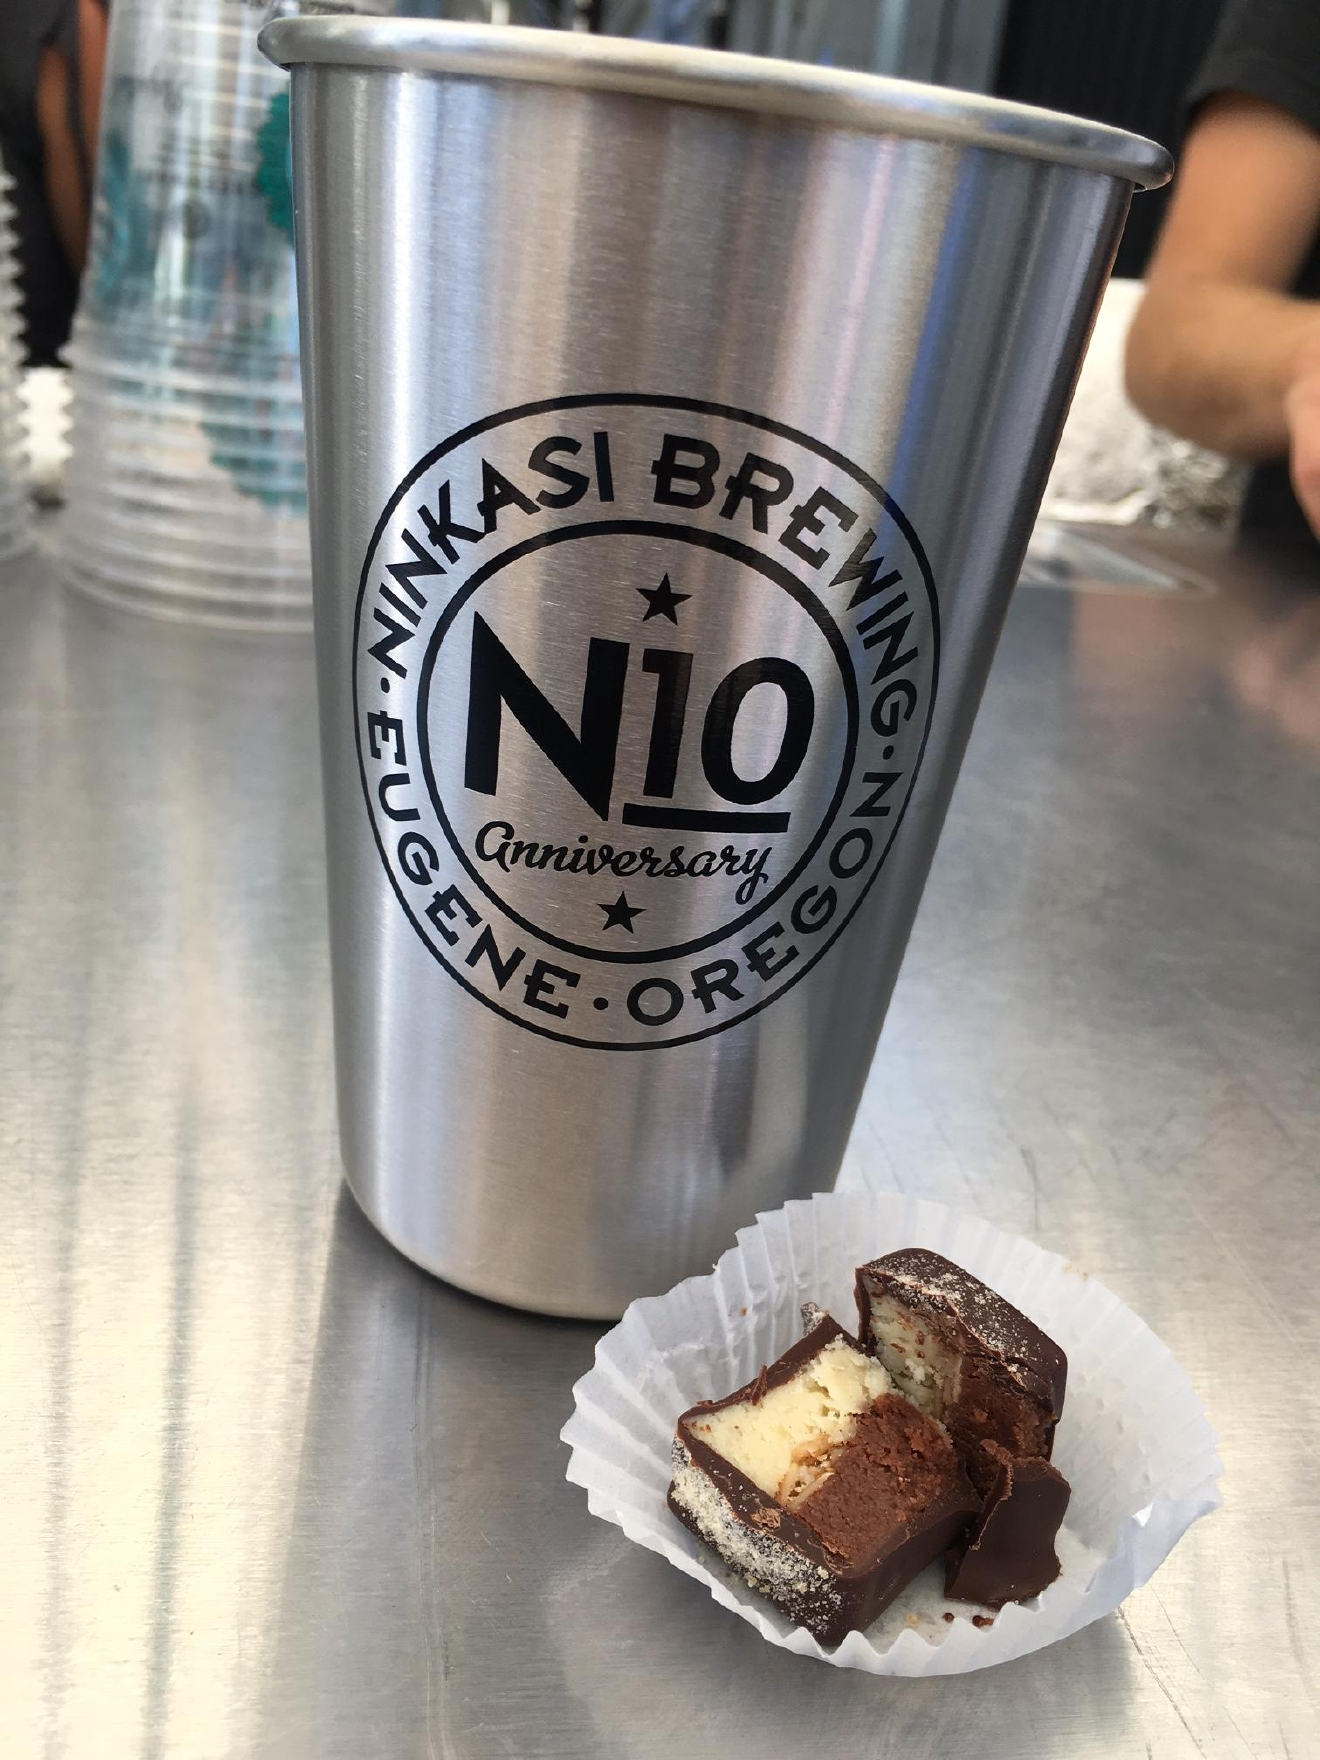 In true Ninkasi fashion, the brewery released a special edition beer called the N10 to celebrate its 10th anniversary. (SBG photo)